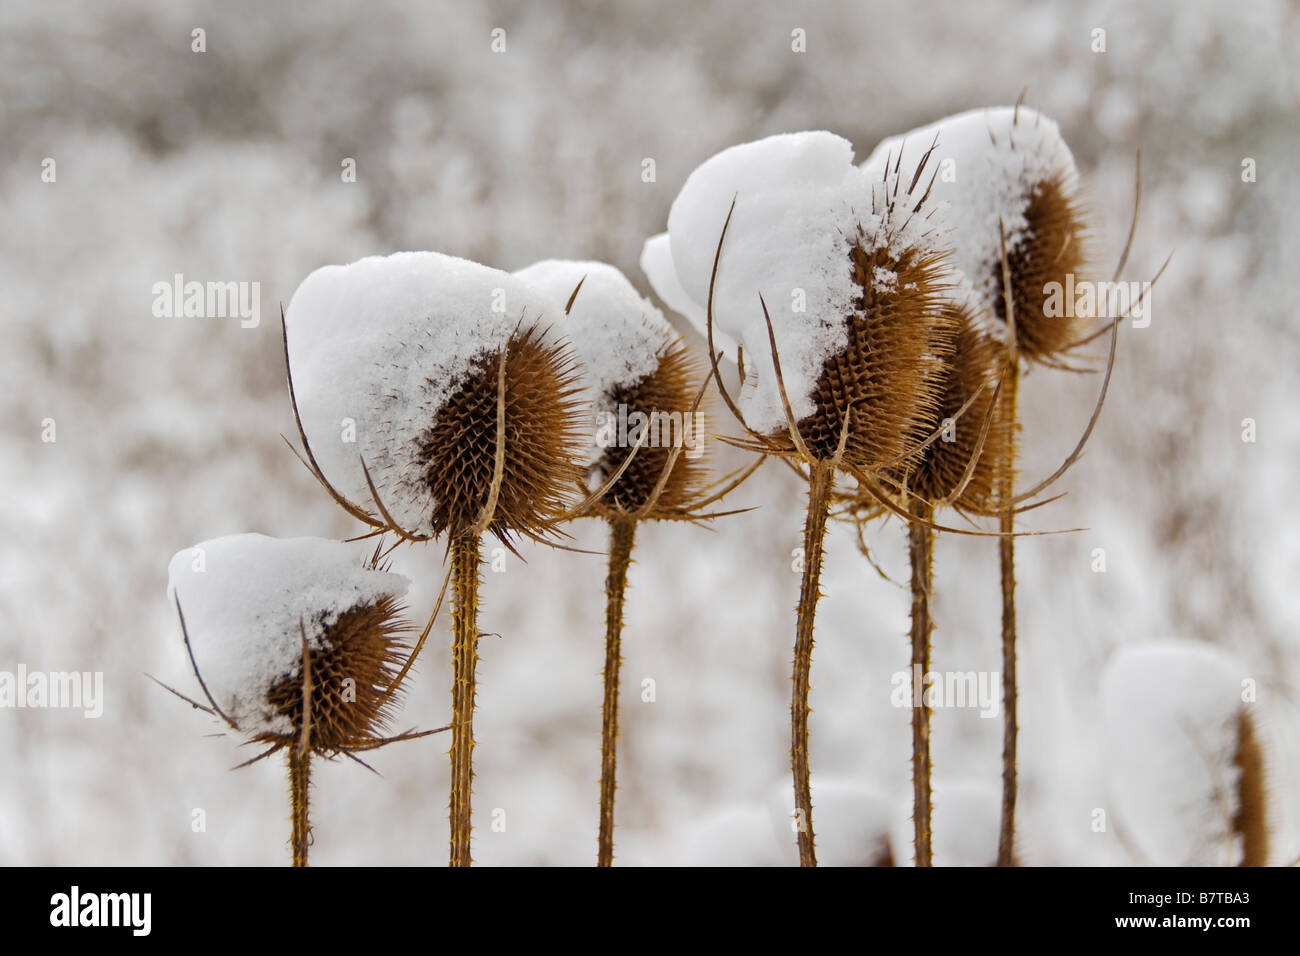 Teasels and snow - Stock Image